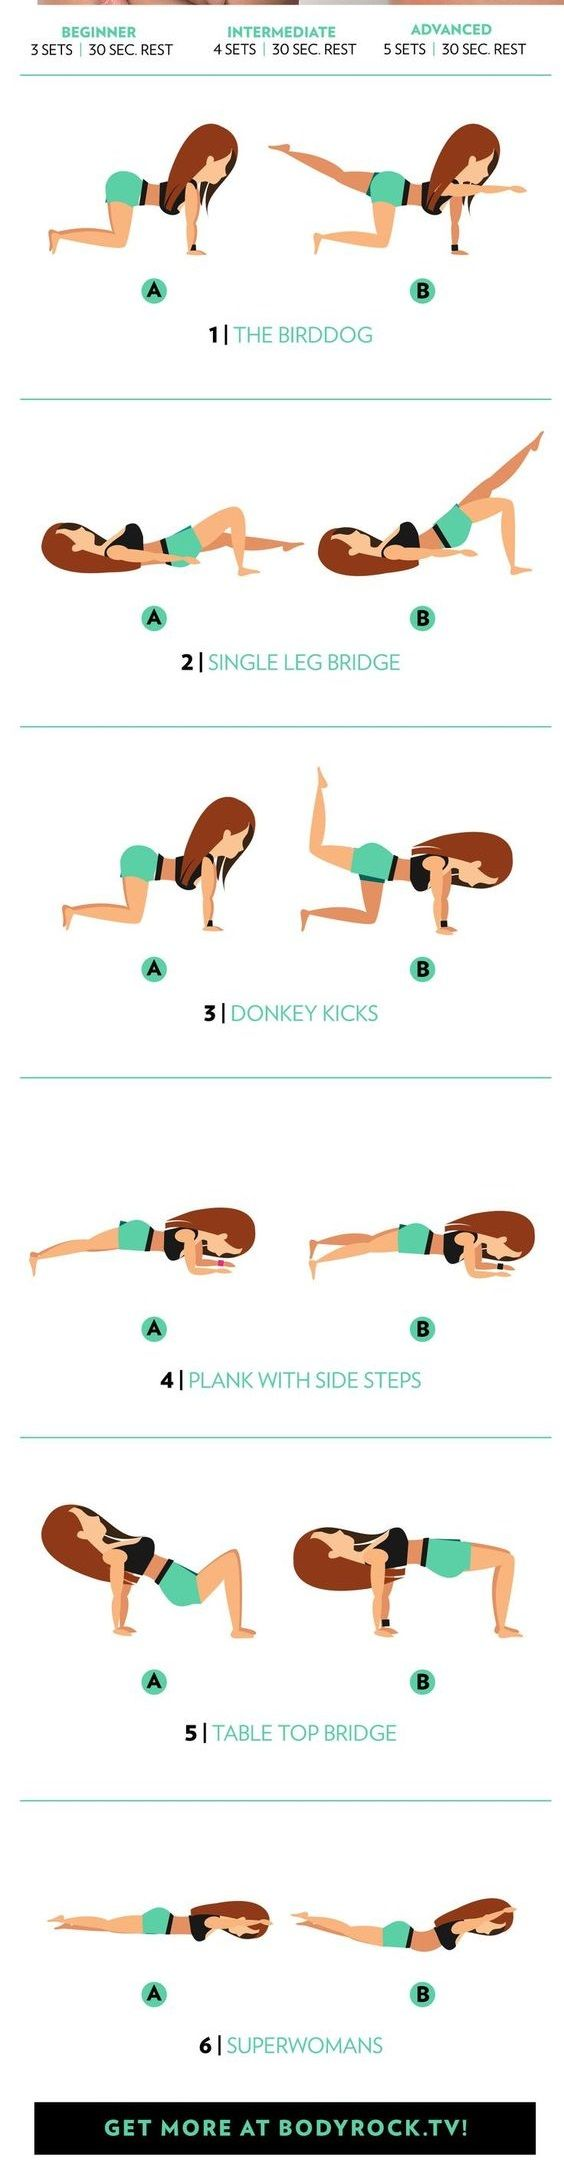 Want to take your butt from flat to full? Check out this better butt workout!